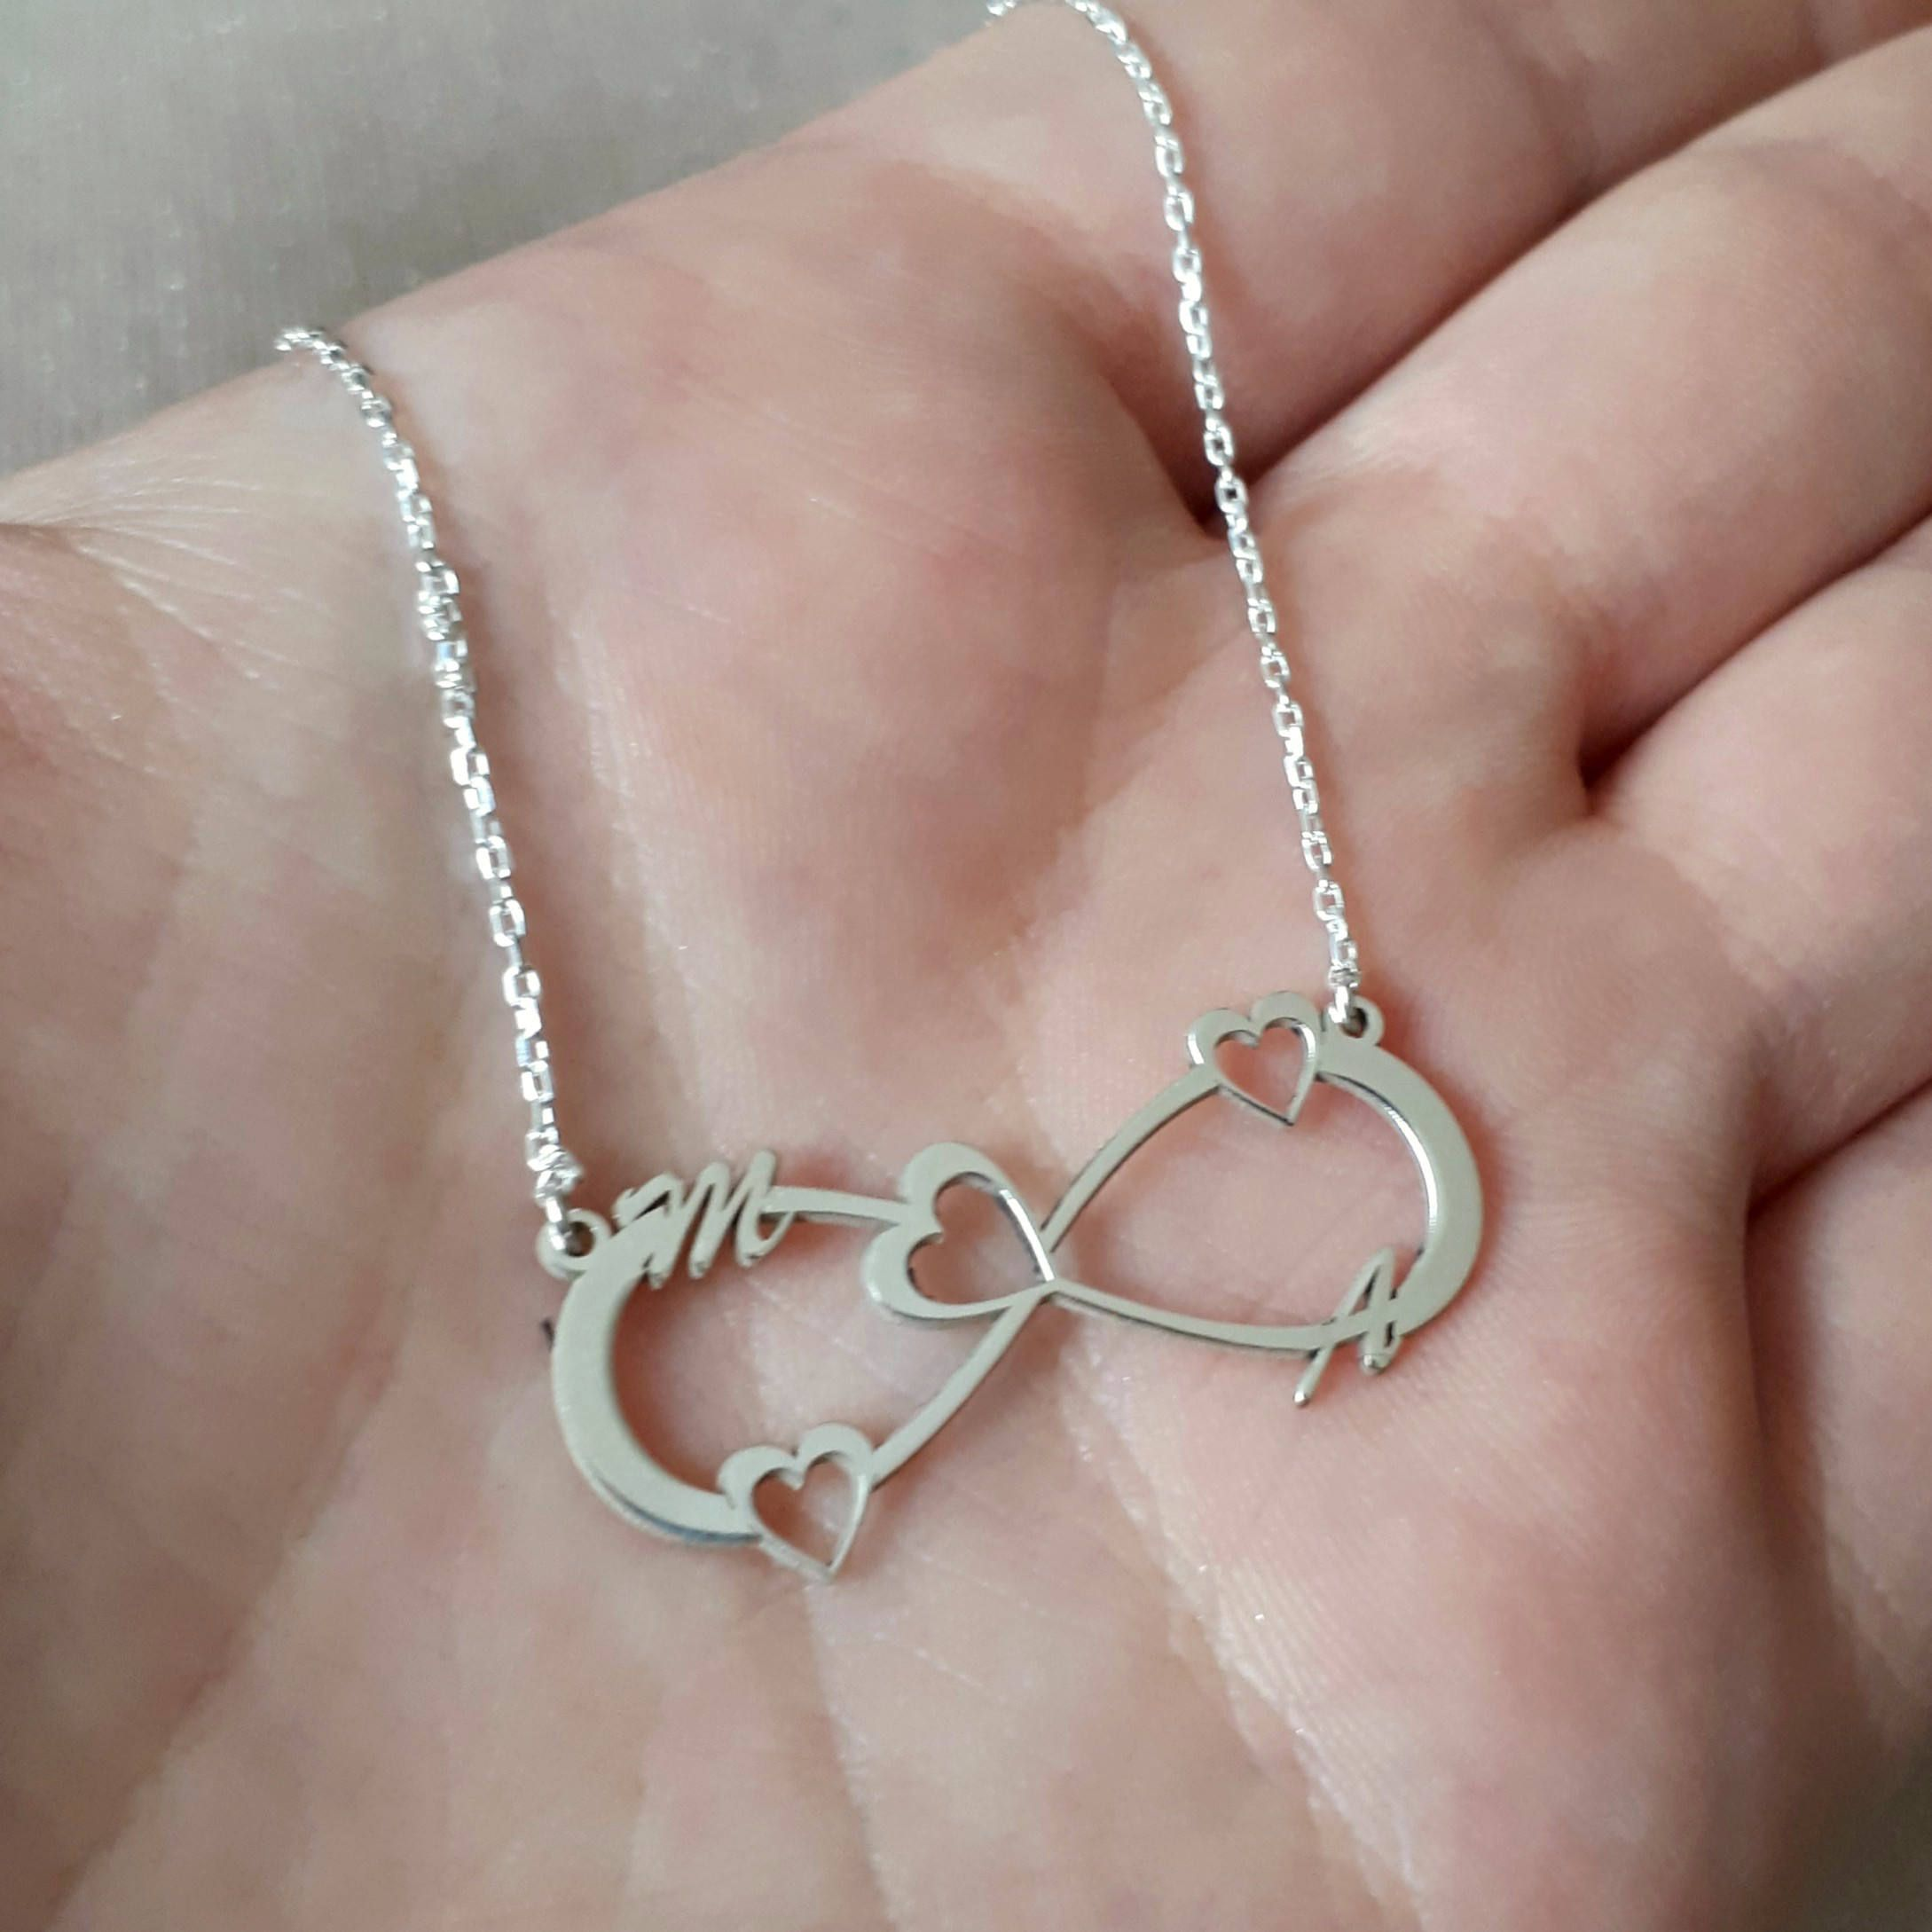 5dde6ee8a777c Initial Infinity Necklace Sterling Silver Infinity Necklace ...